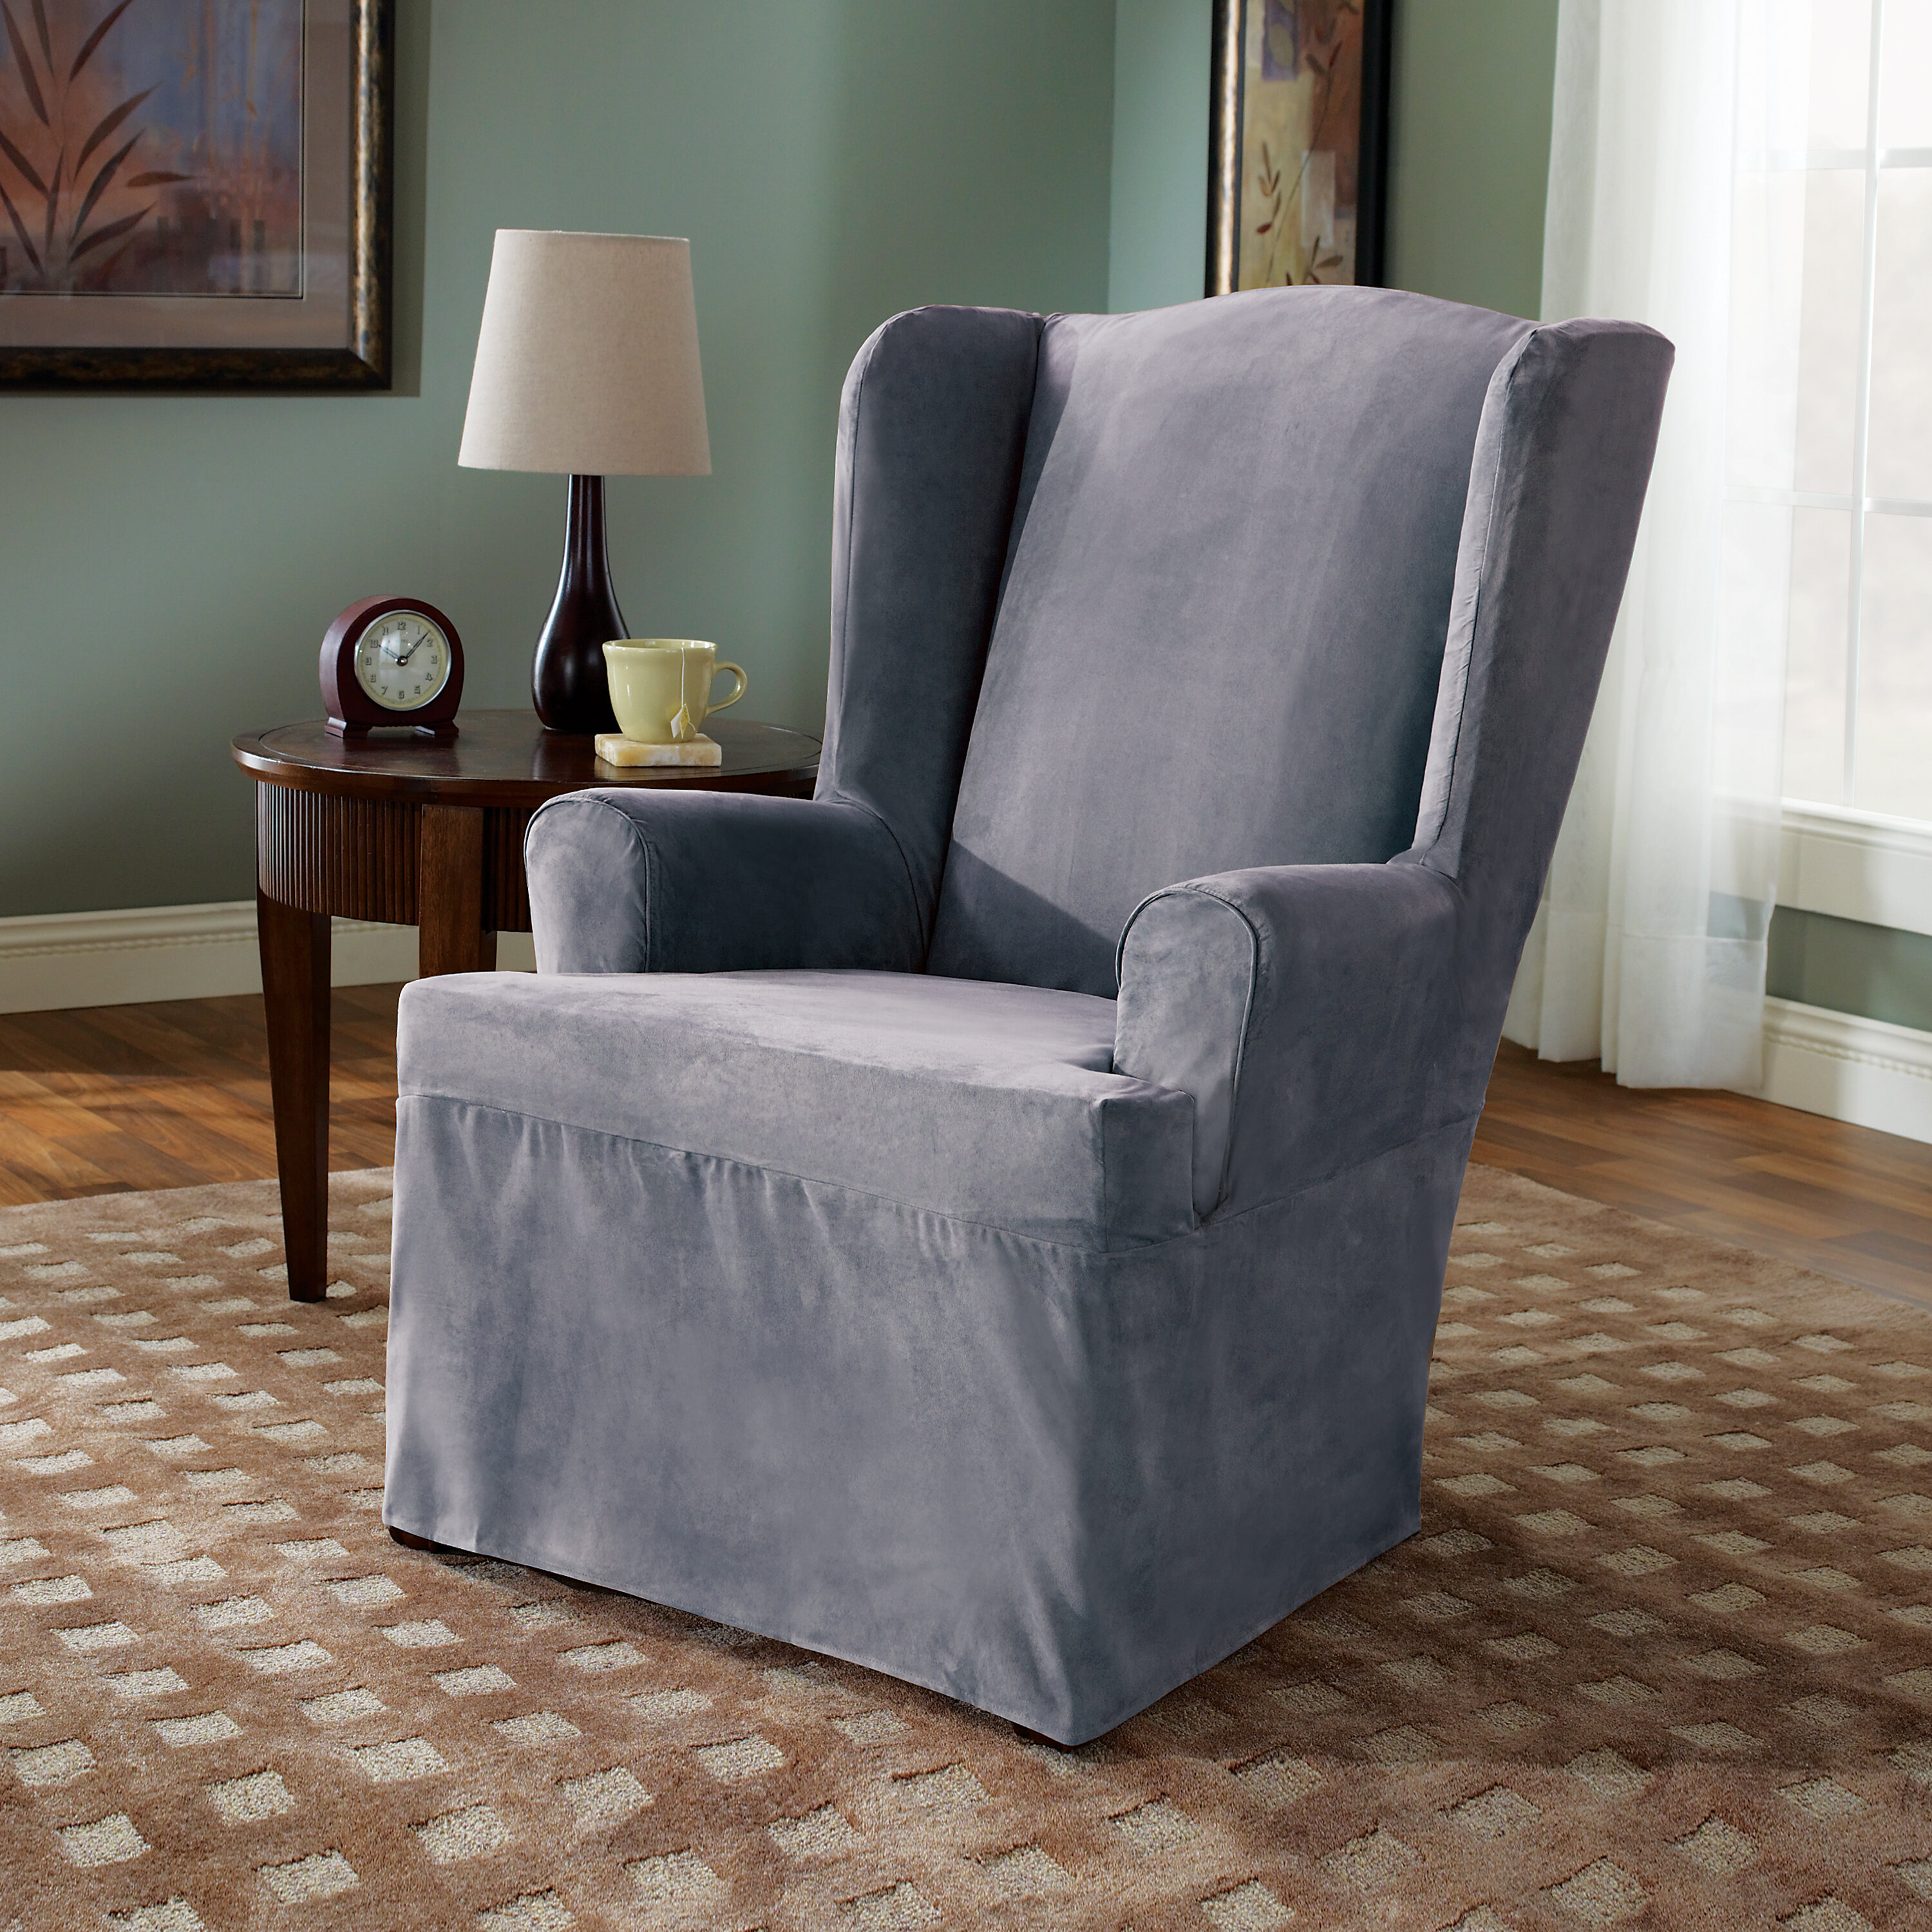 Admirable Soft Suede T Cushion Wingback Slipcover Gmtry Best Dining Table And Chair Ideas Images Gmtryco